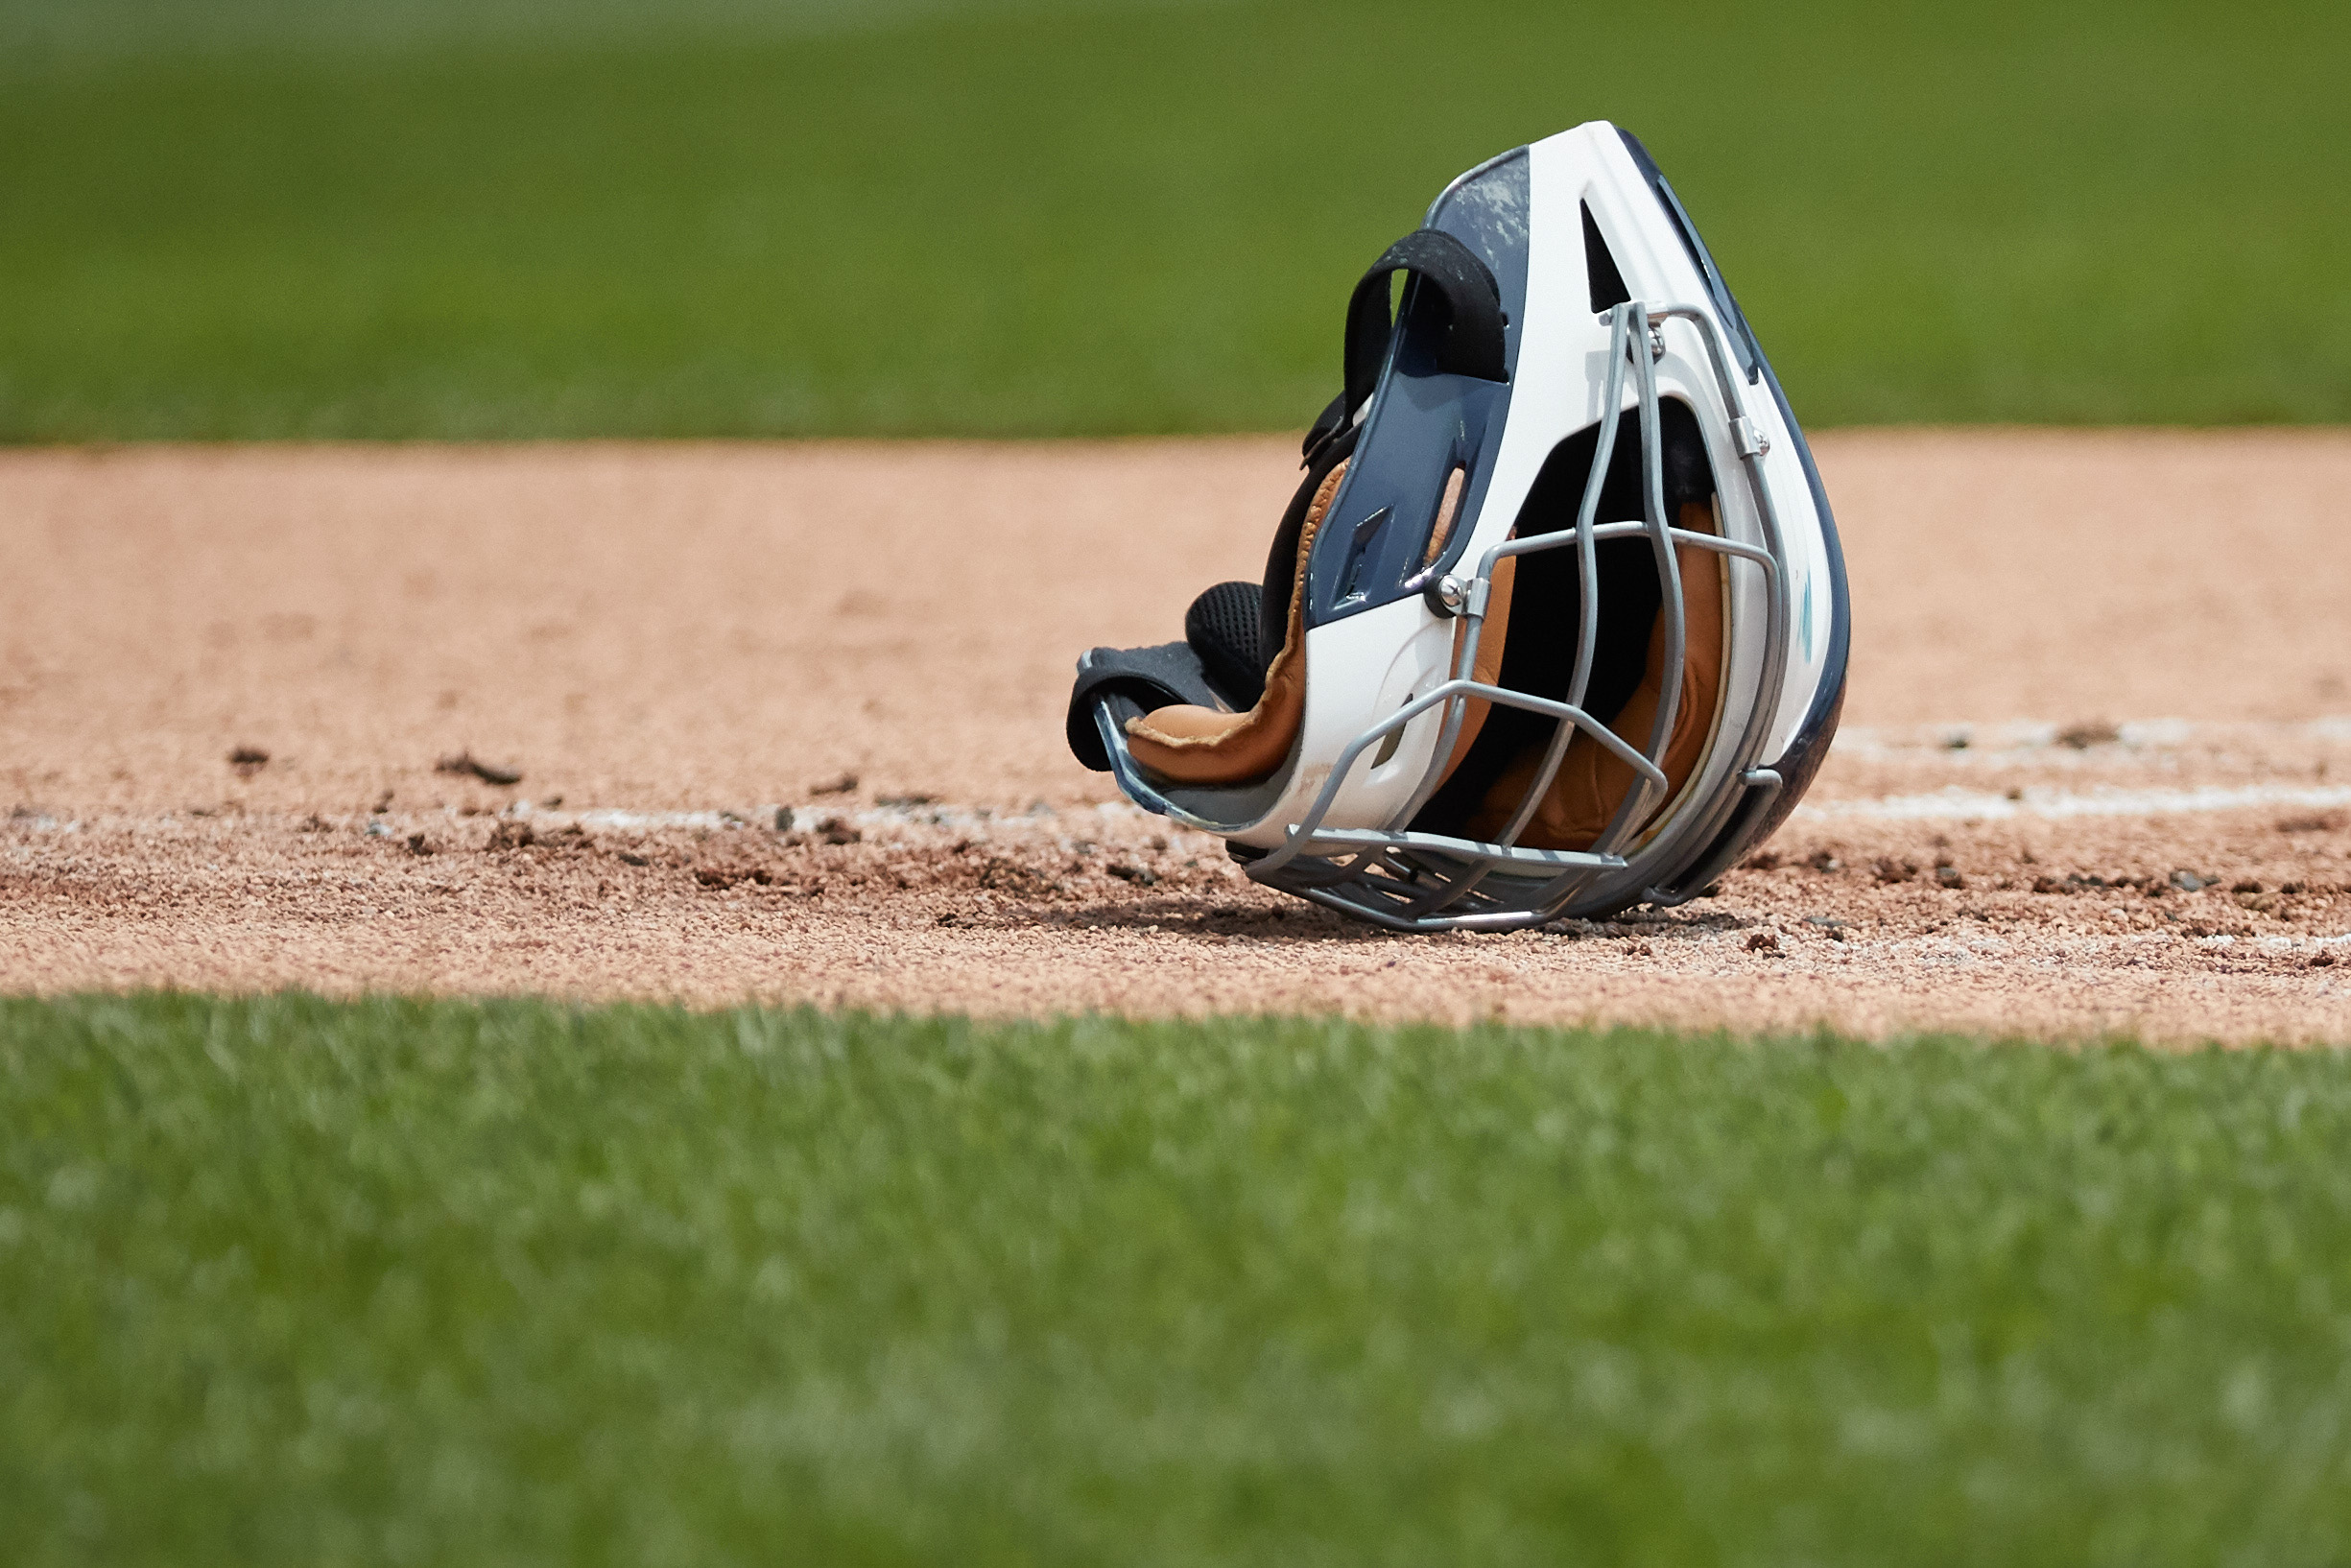 MLB: Kansas City Royals at Detroit Tigers